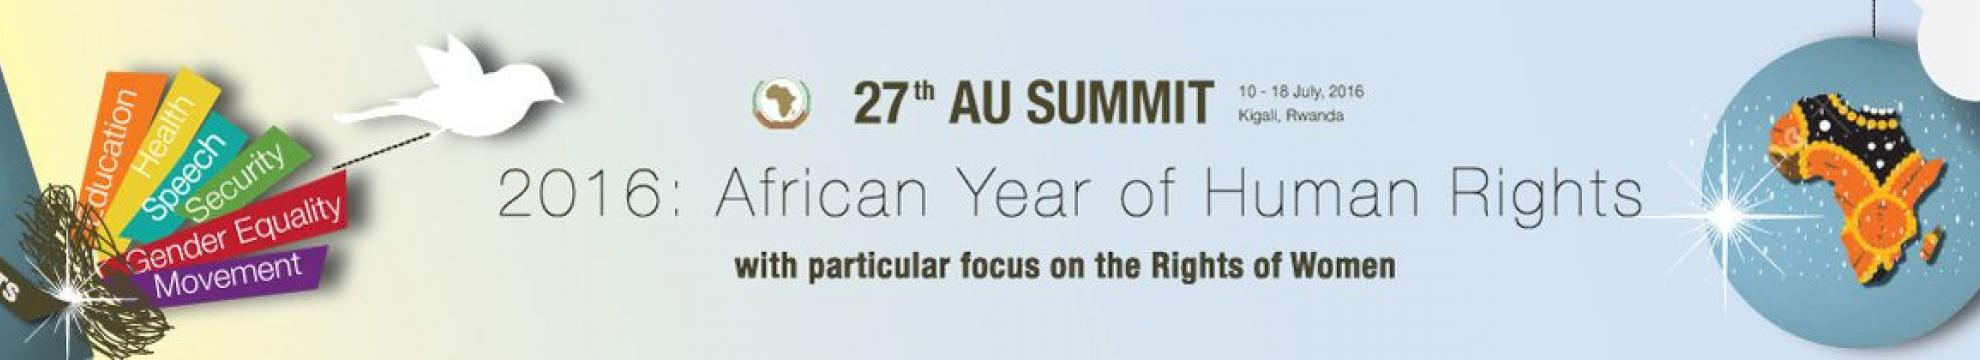 27th AU Summit banner